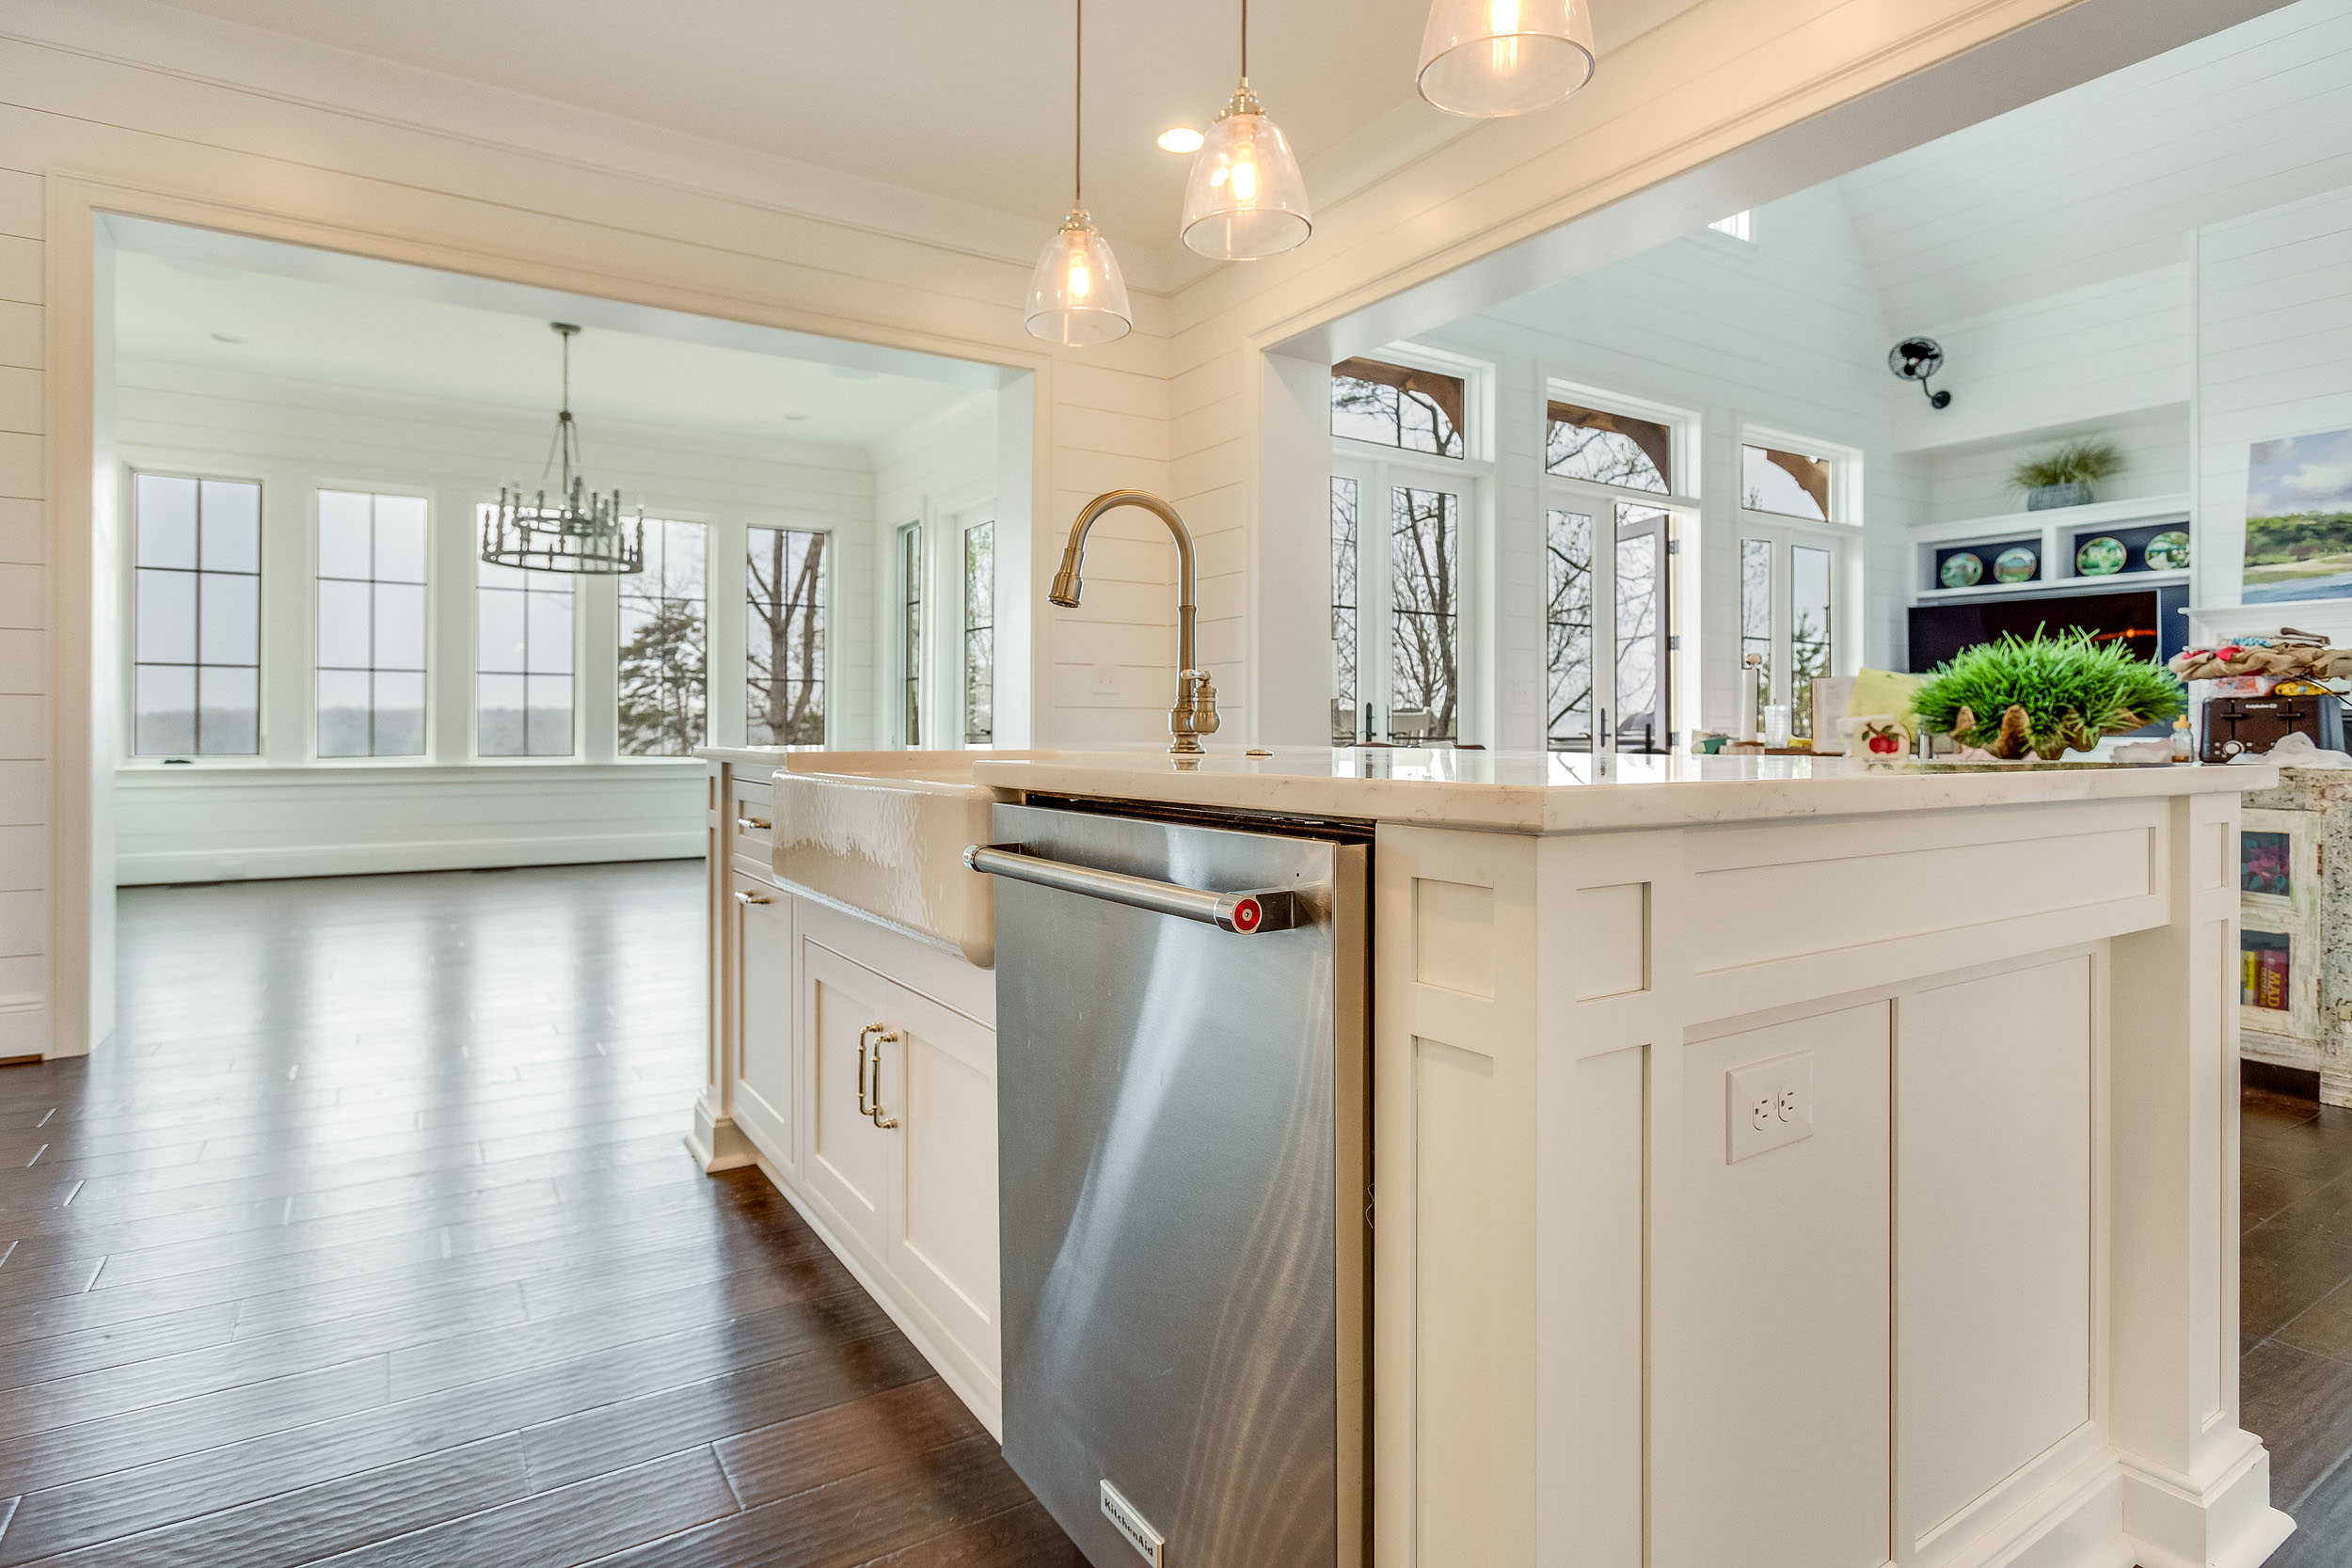 The dishwasher by Kitchenaid is placed within the island.